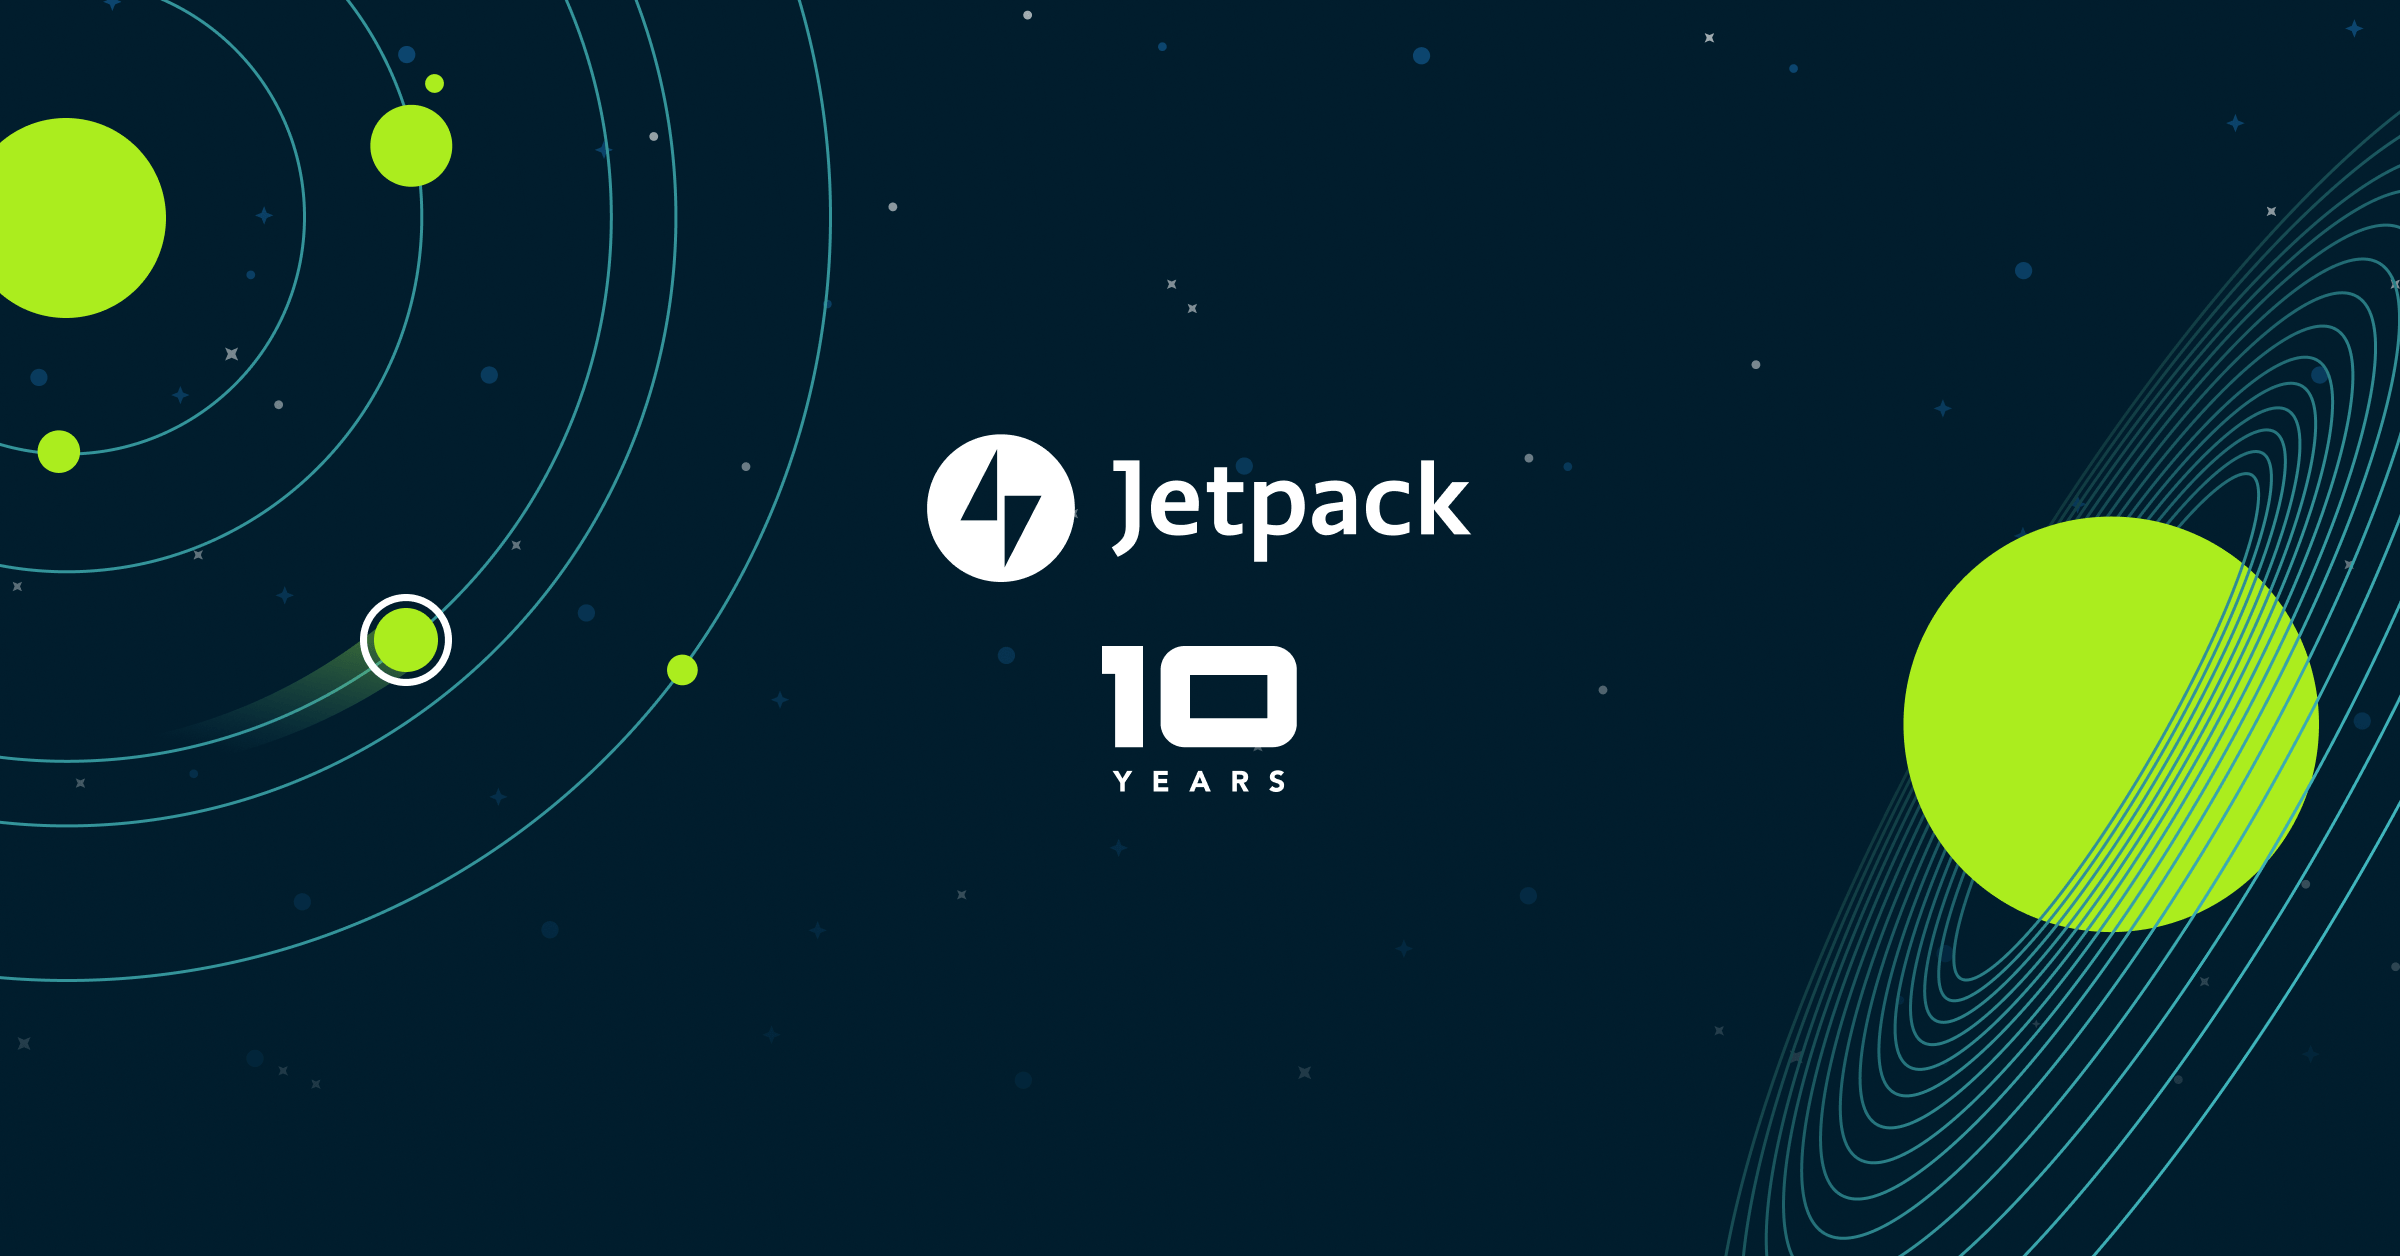 Jetpack Turns 10